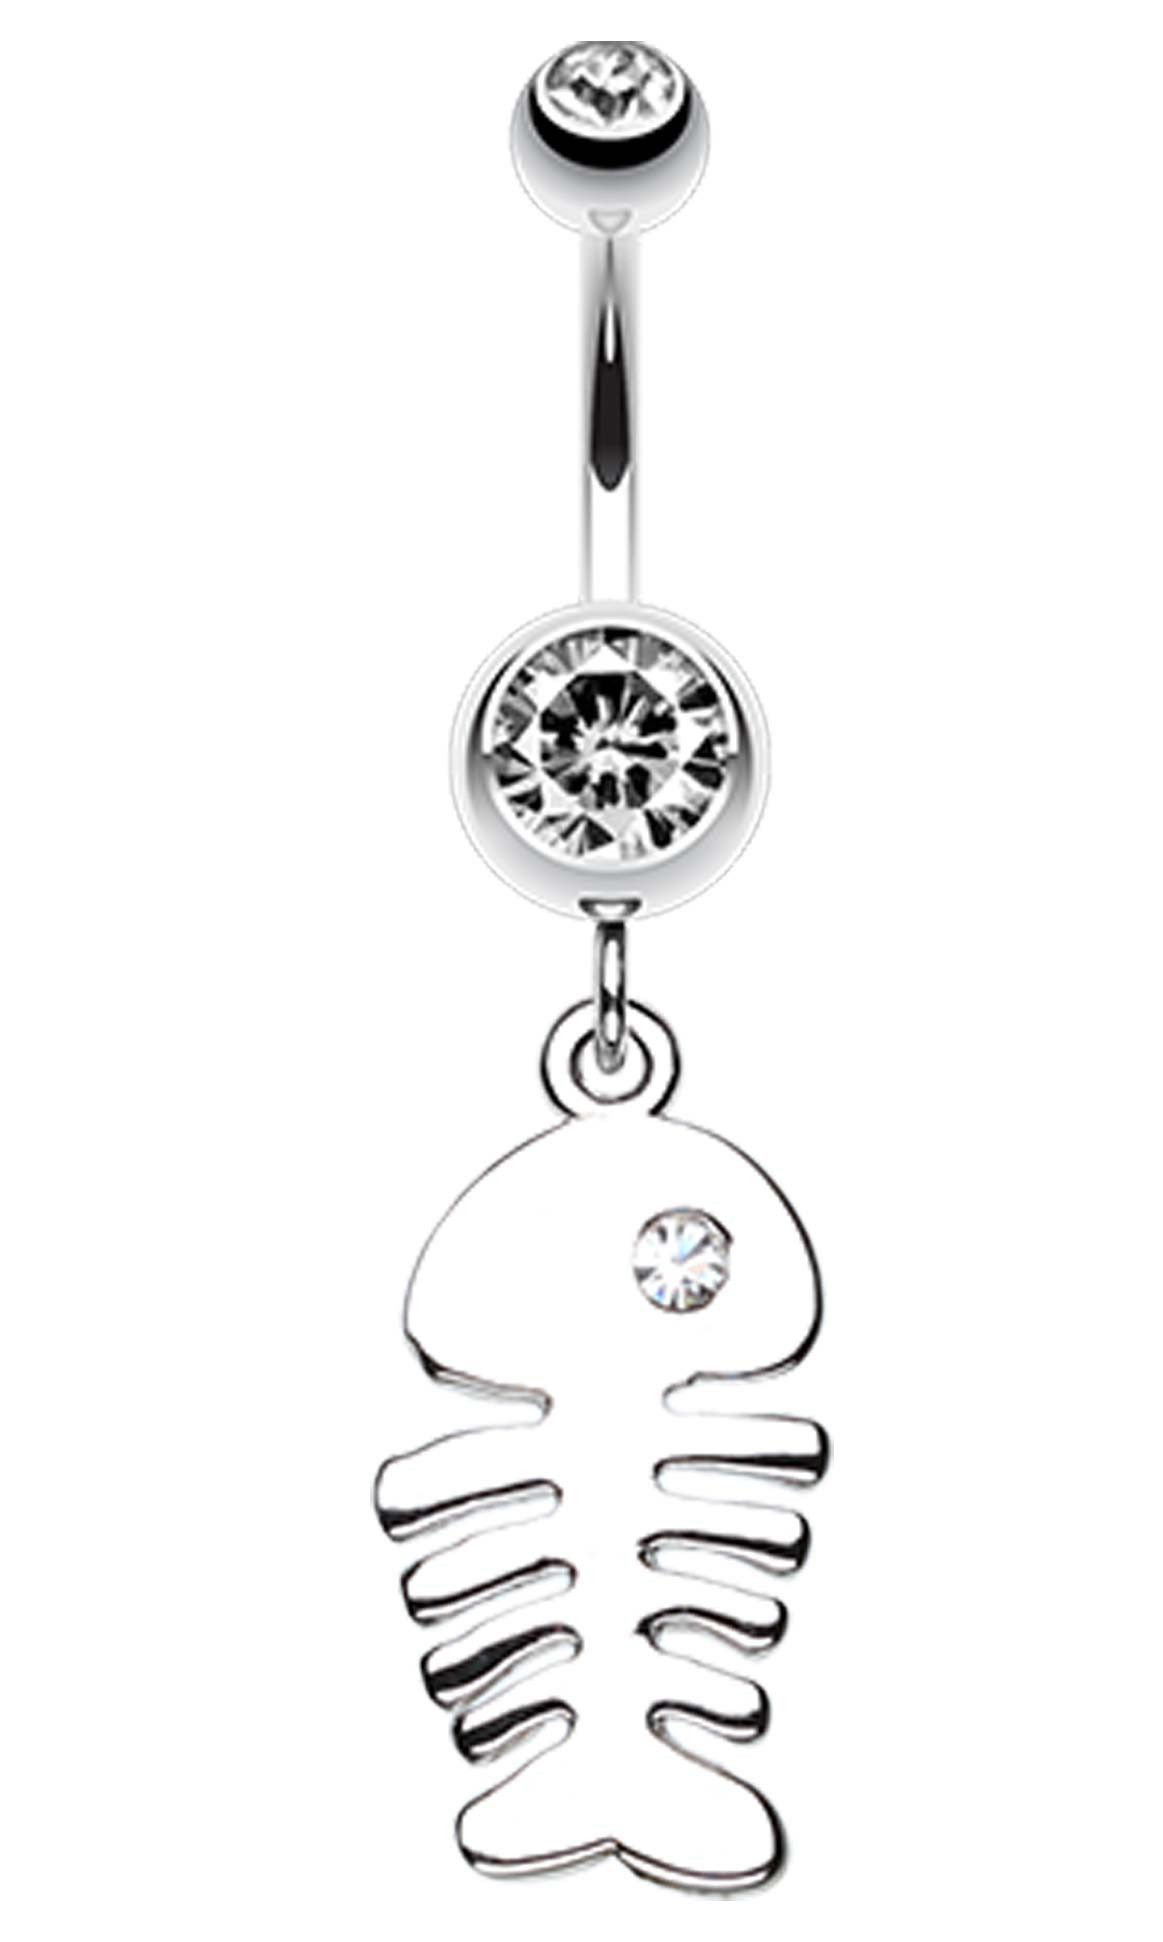 Belly button piercing names  Jeweled Eye Fish Bone Belly Button Ring  Belly button Jewel and Ring